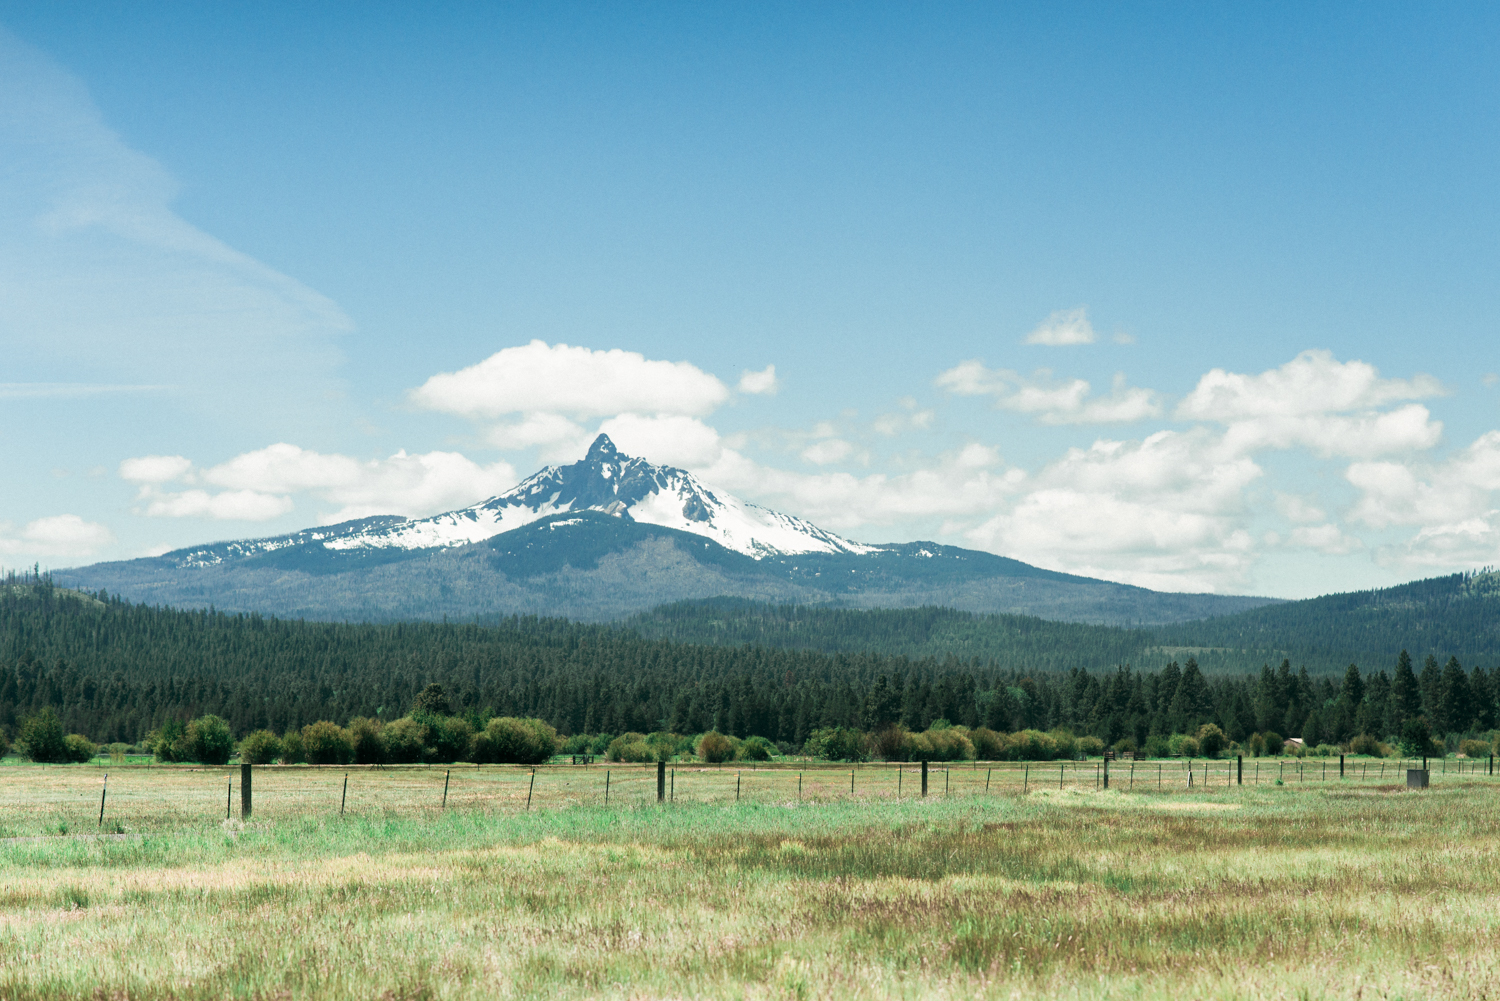 black-butte-ranch-oregon-wedding-photographer-shelley-marie-photo-amy-tyler-0002.jpg